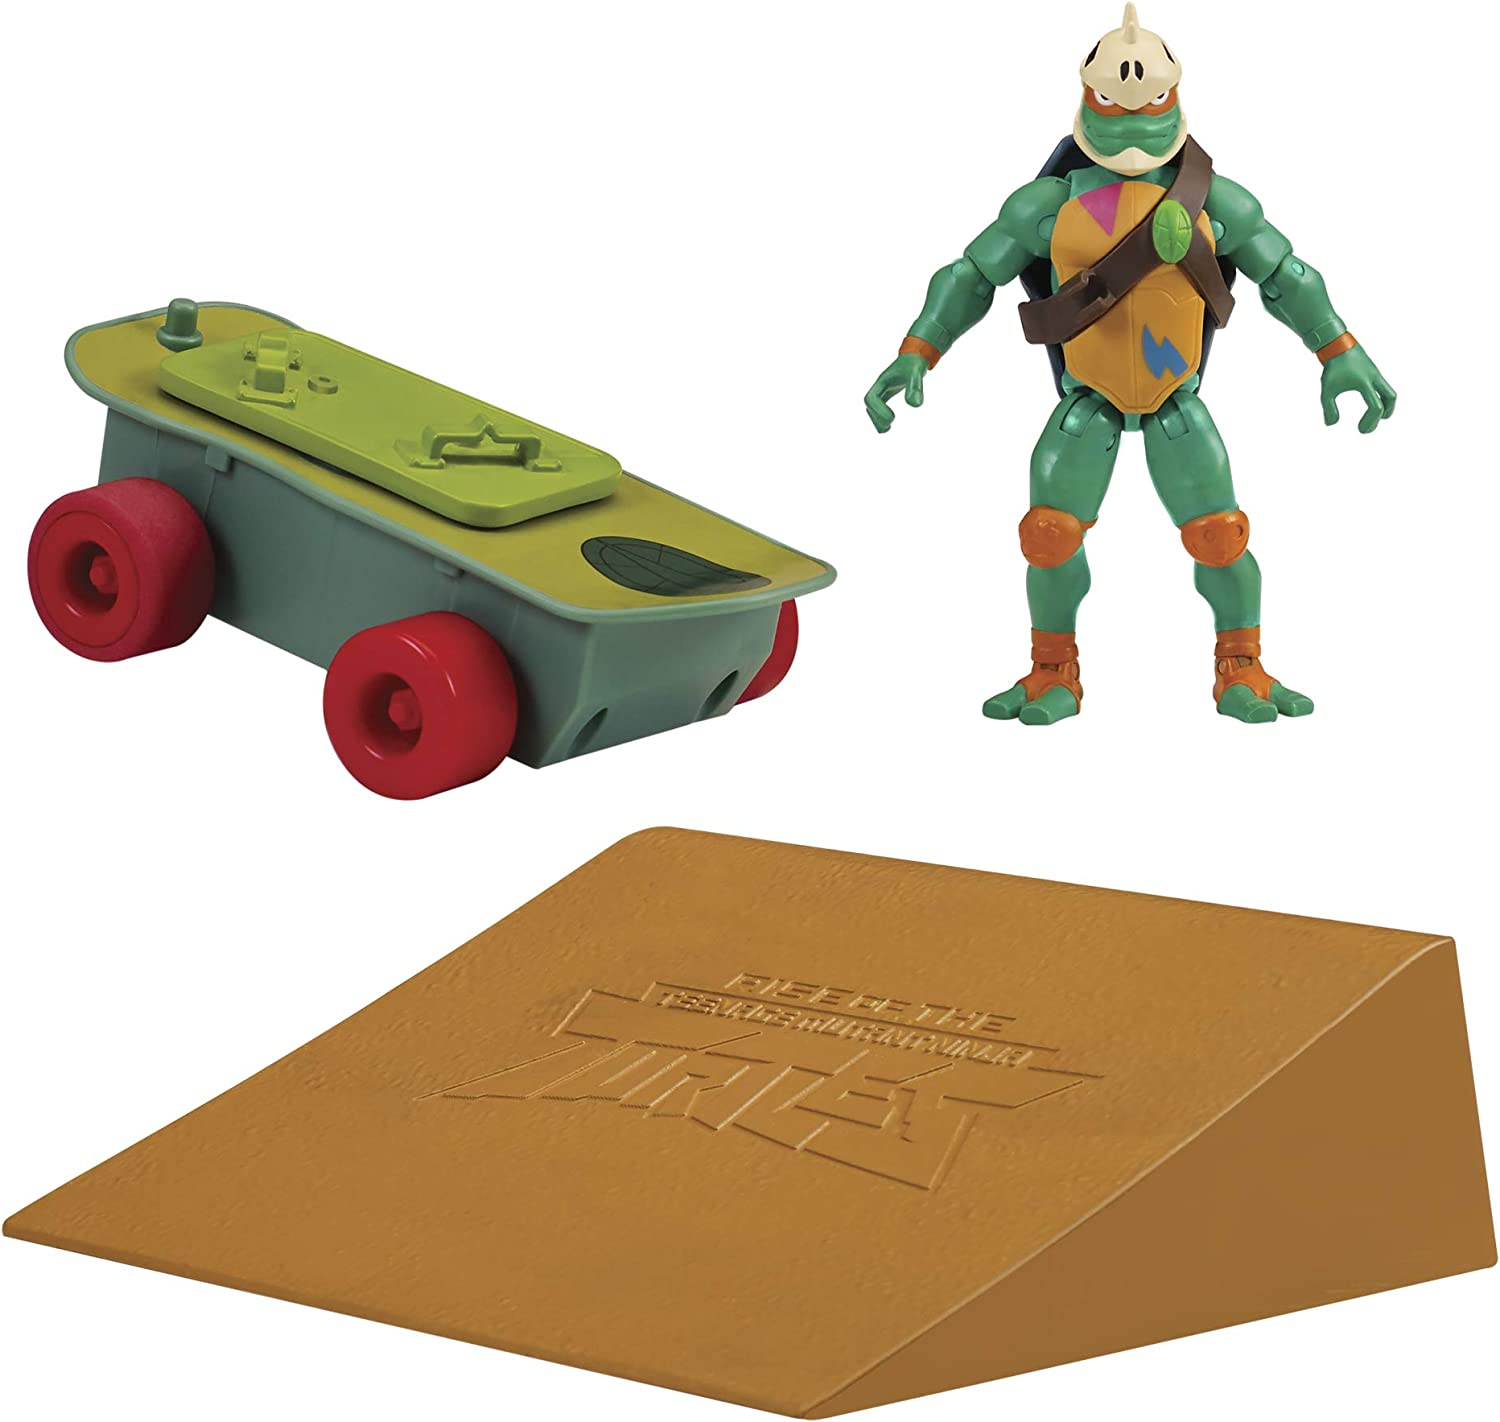 Rise of the Teenage Mutant Ninja Turtle Skateboard Vehicle with Michelangelo Figure